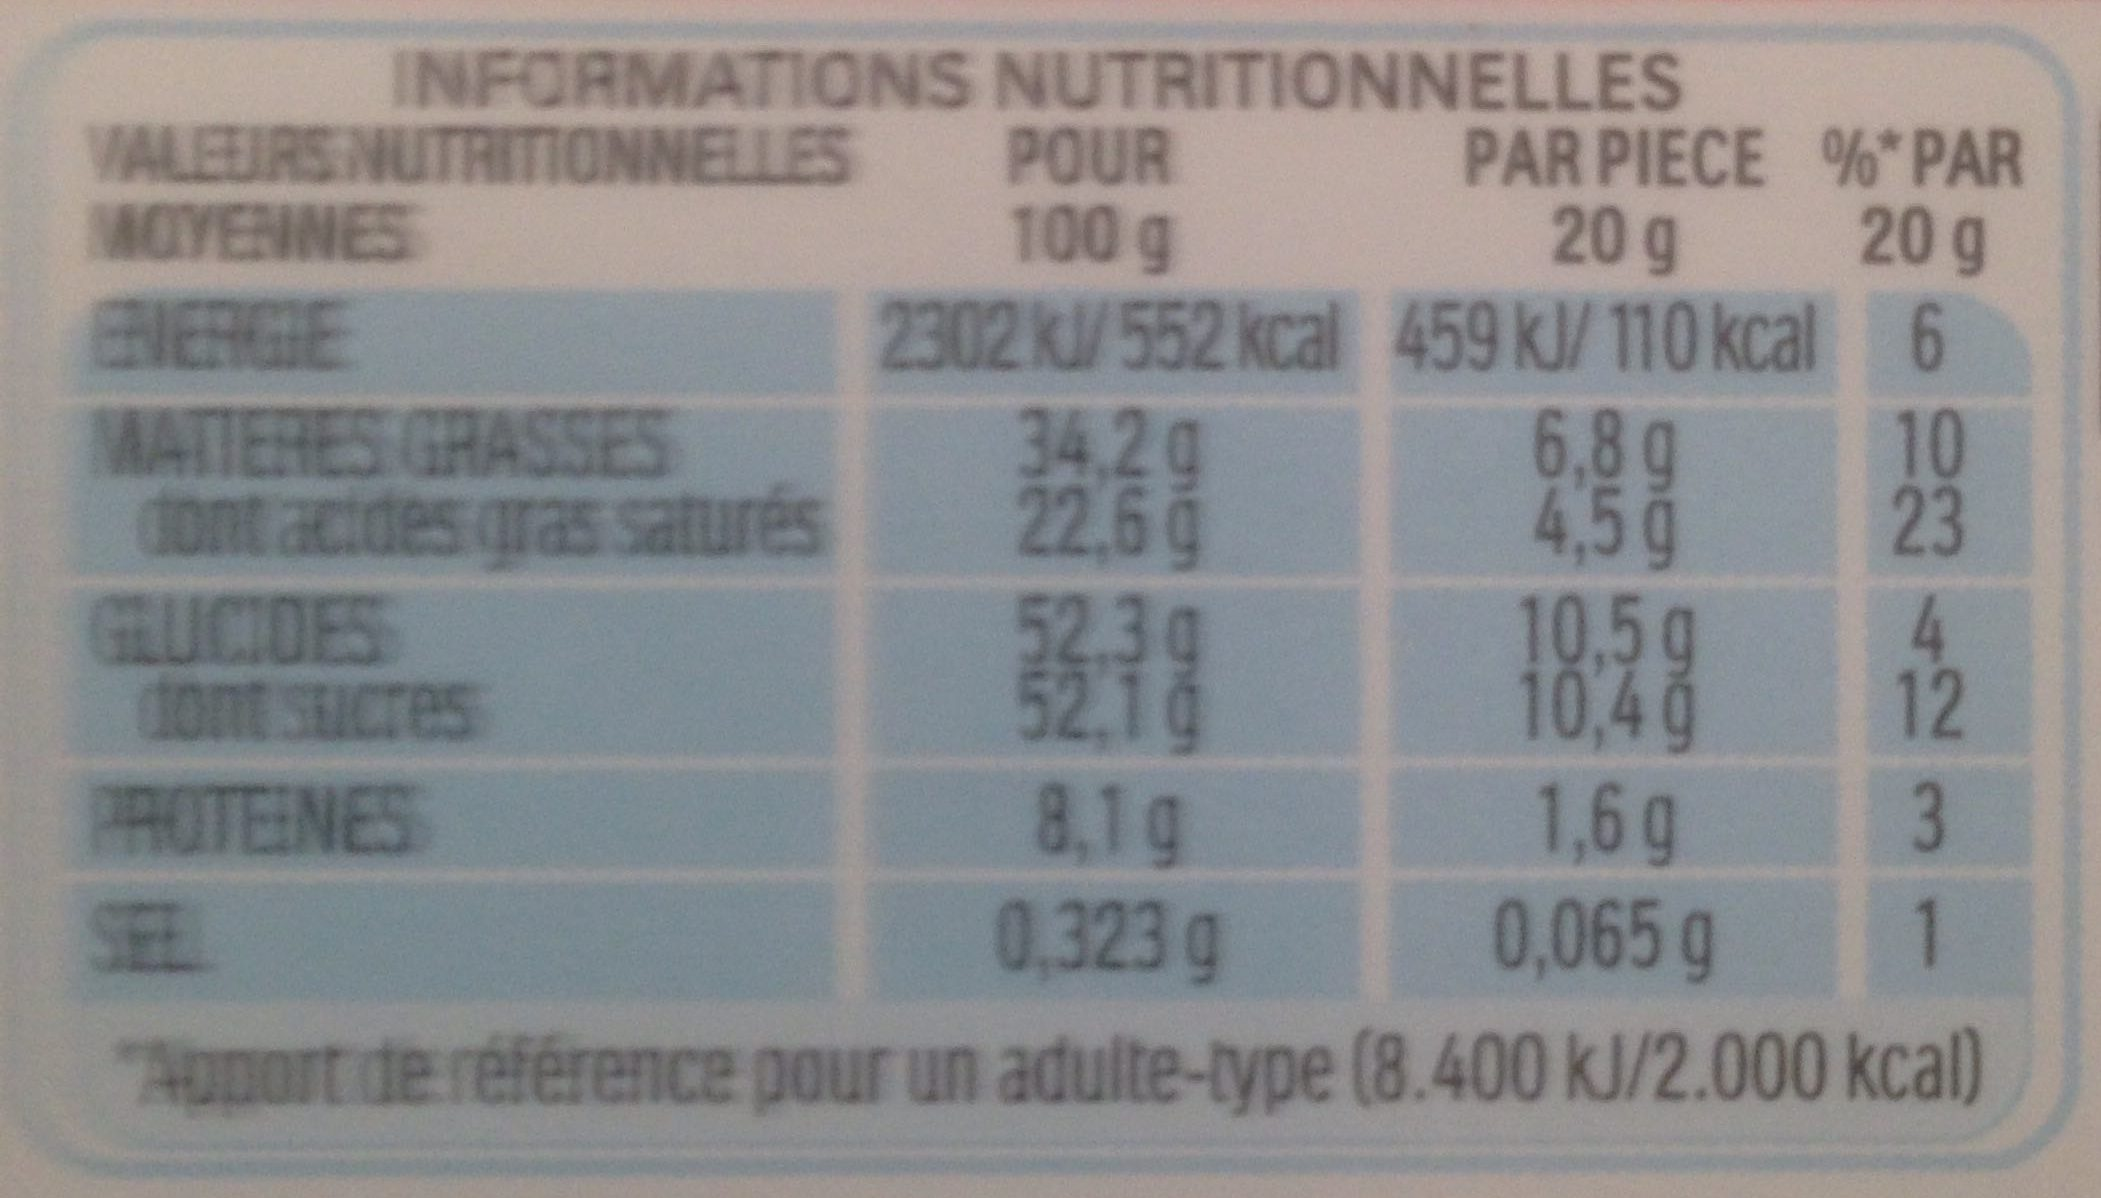 Kinder Surprise - Informations nutritionnelles - fr